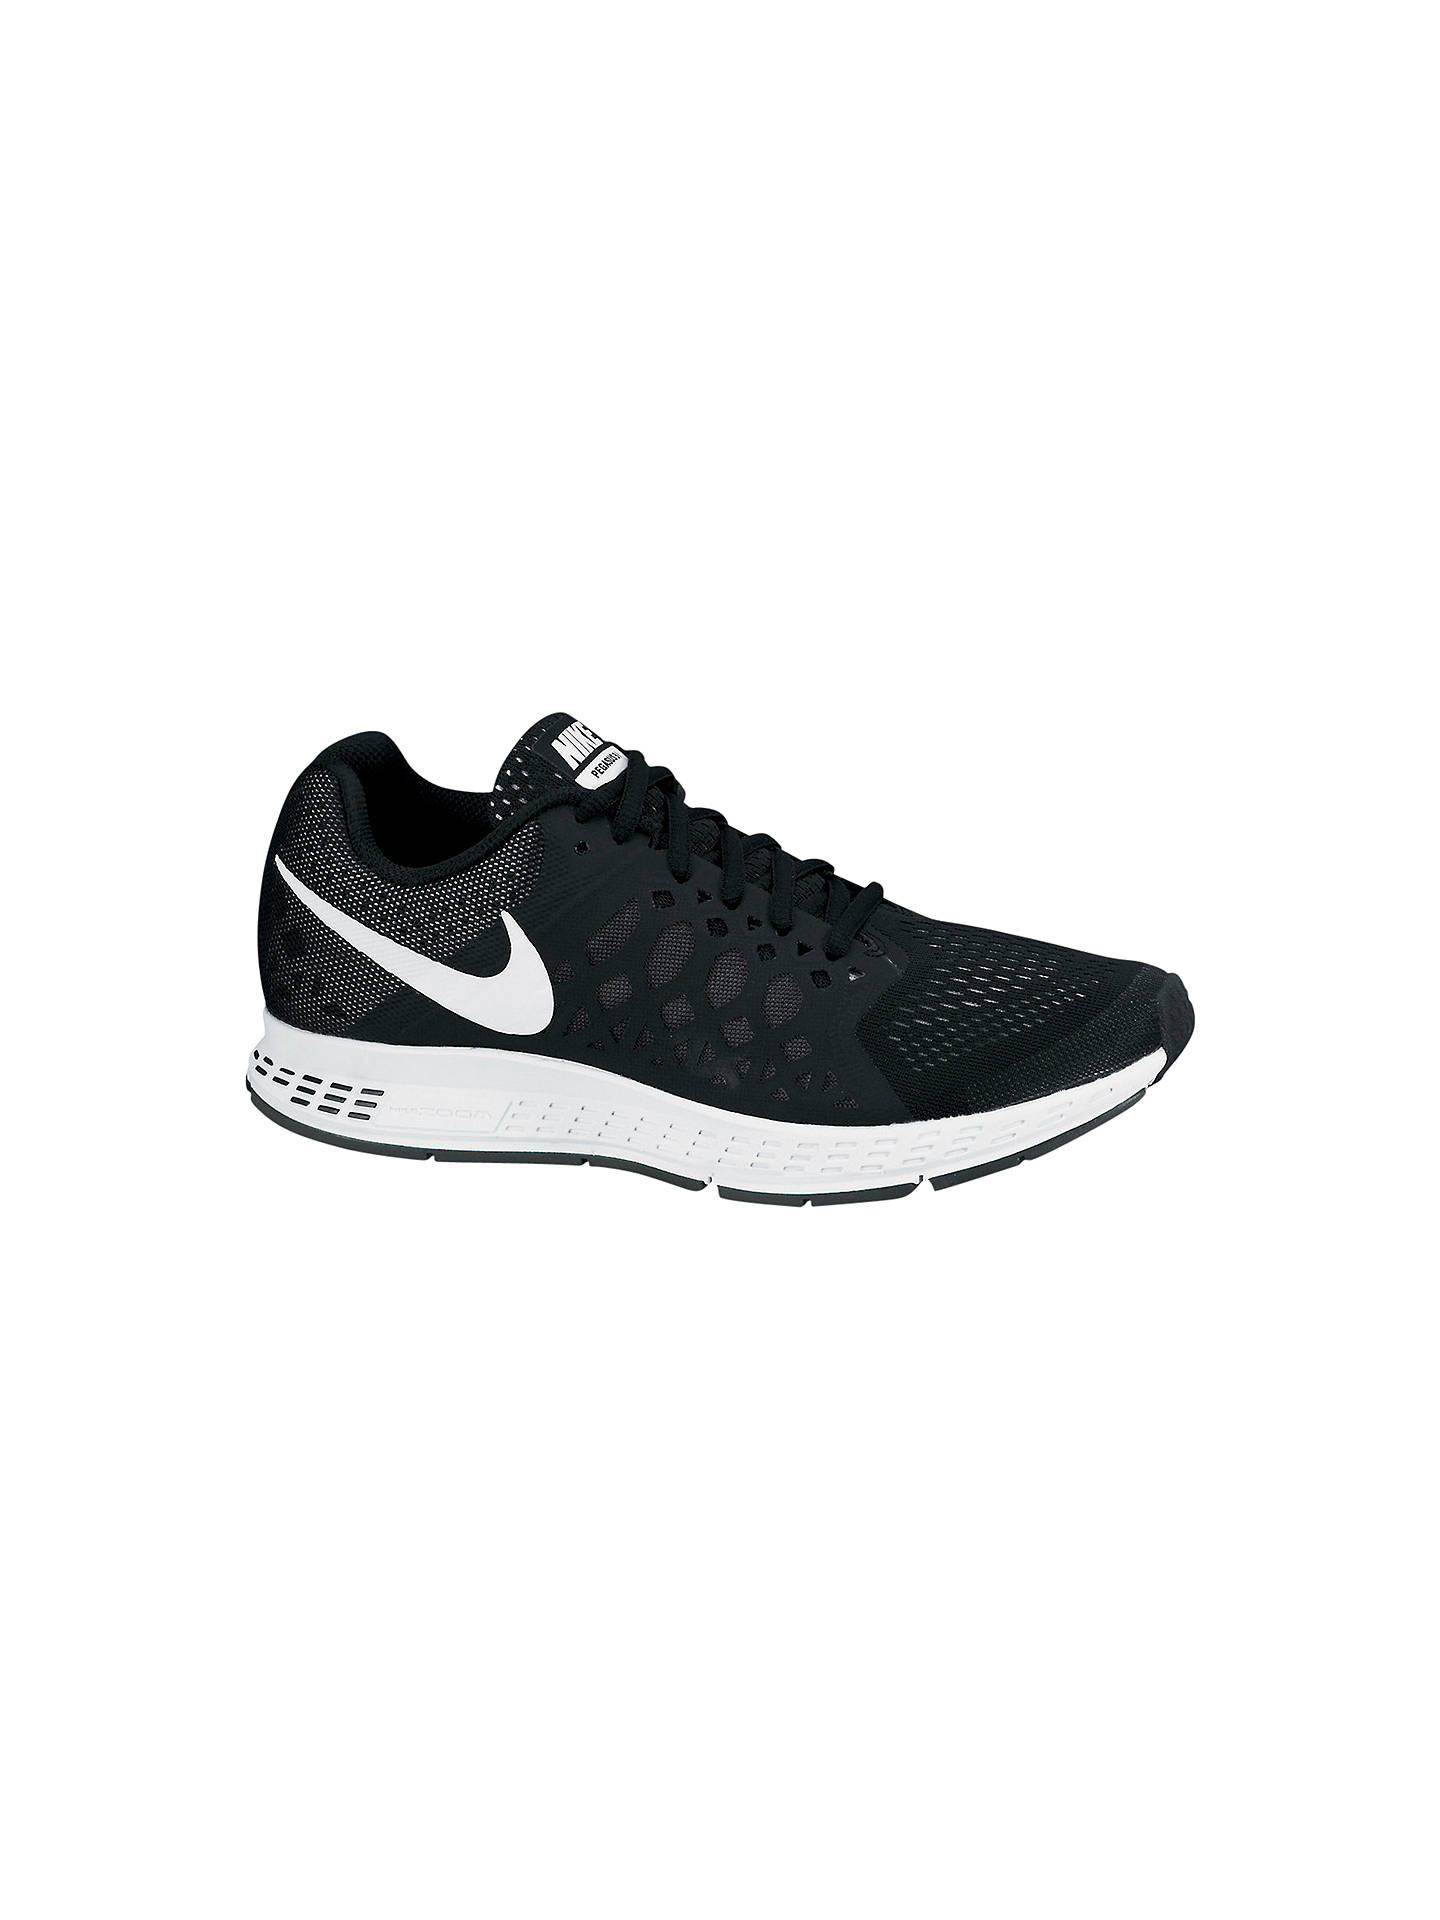 BuyNike Air Zoom Pegasus 31 Women s Running Shoes 884c341af4